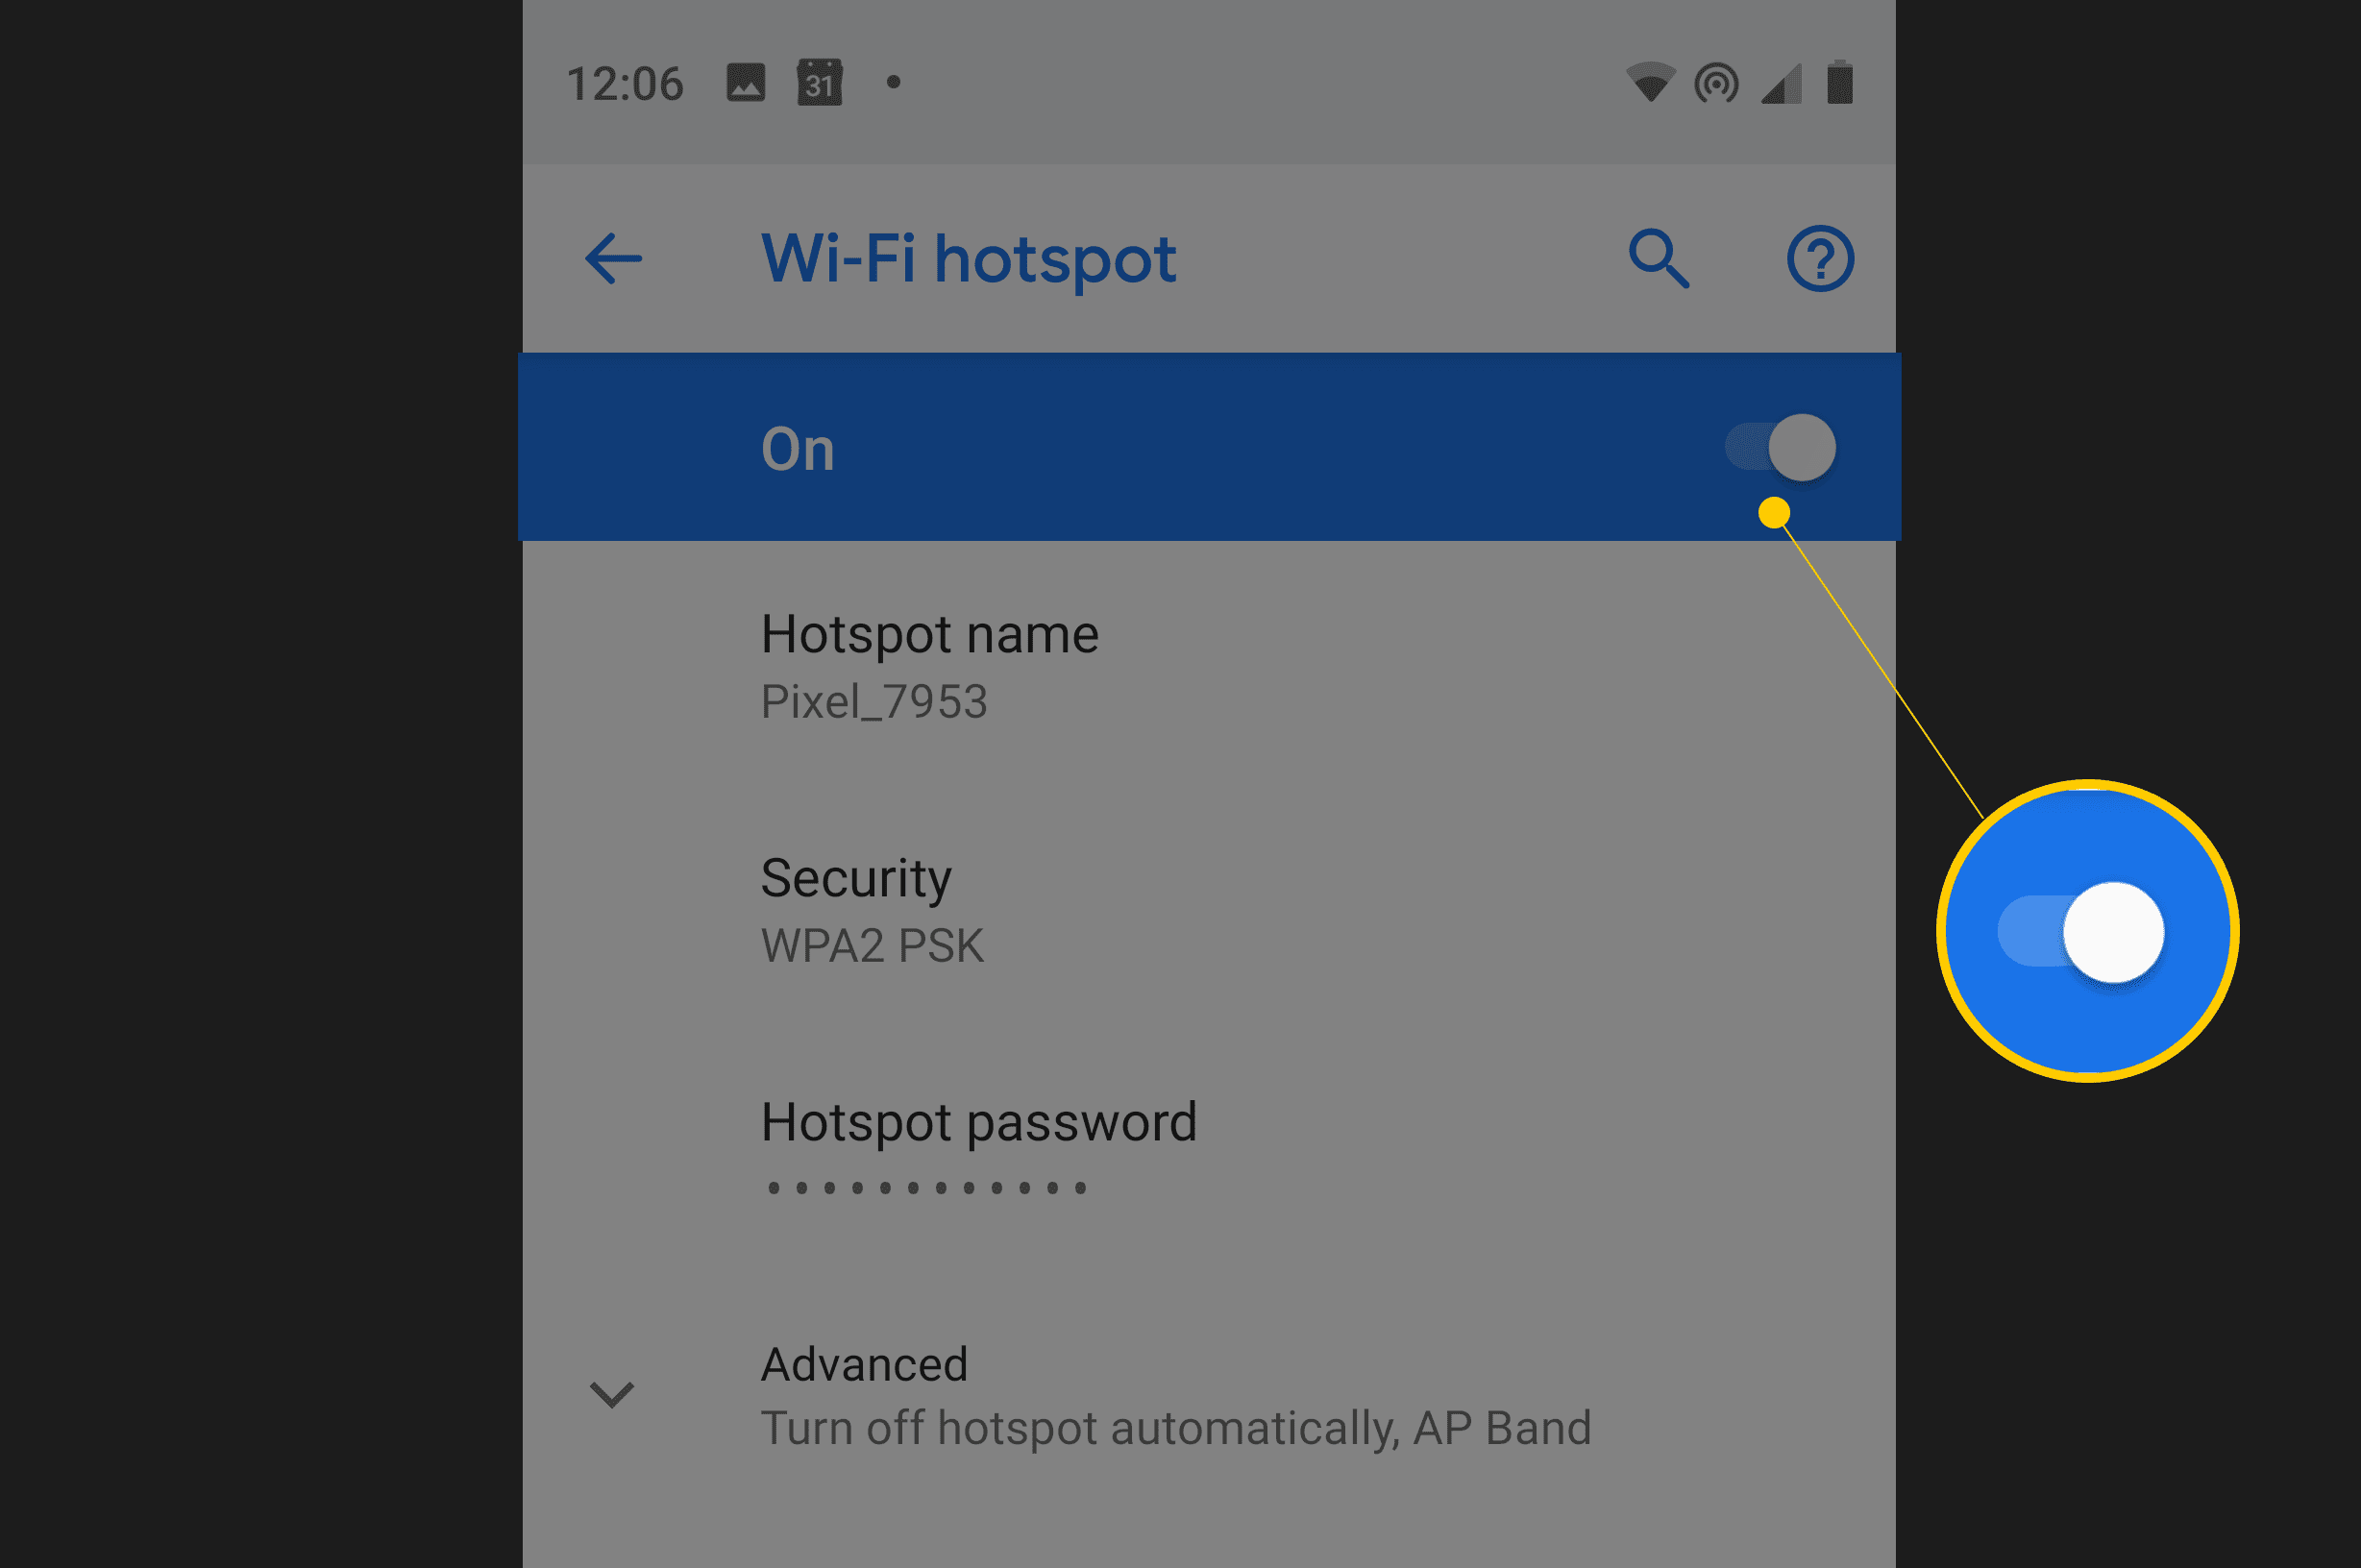 How to Use Your Android Phone As a Portable Wi-Fi Hotspot